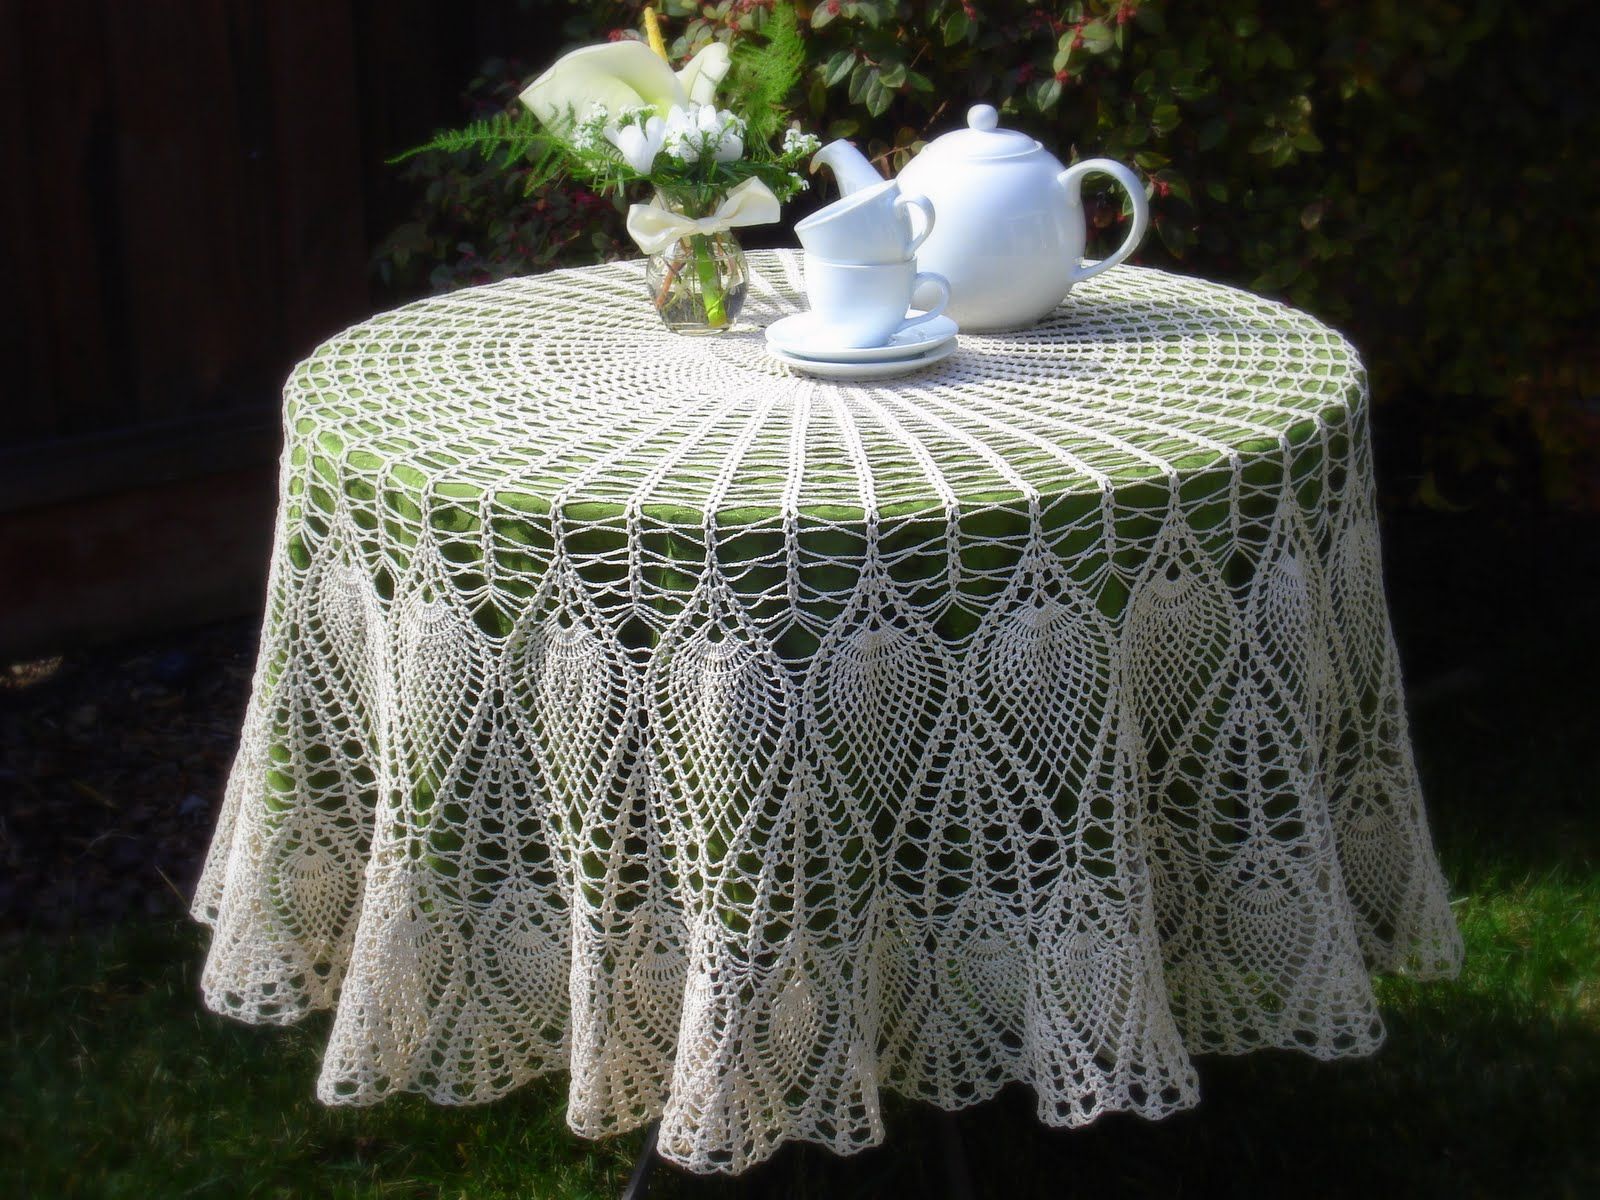 Lacy Crochet: Crocheted Tablecloth